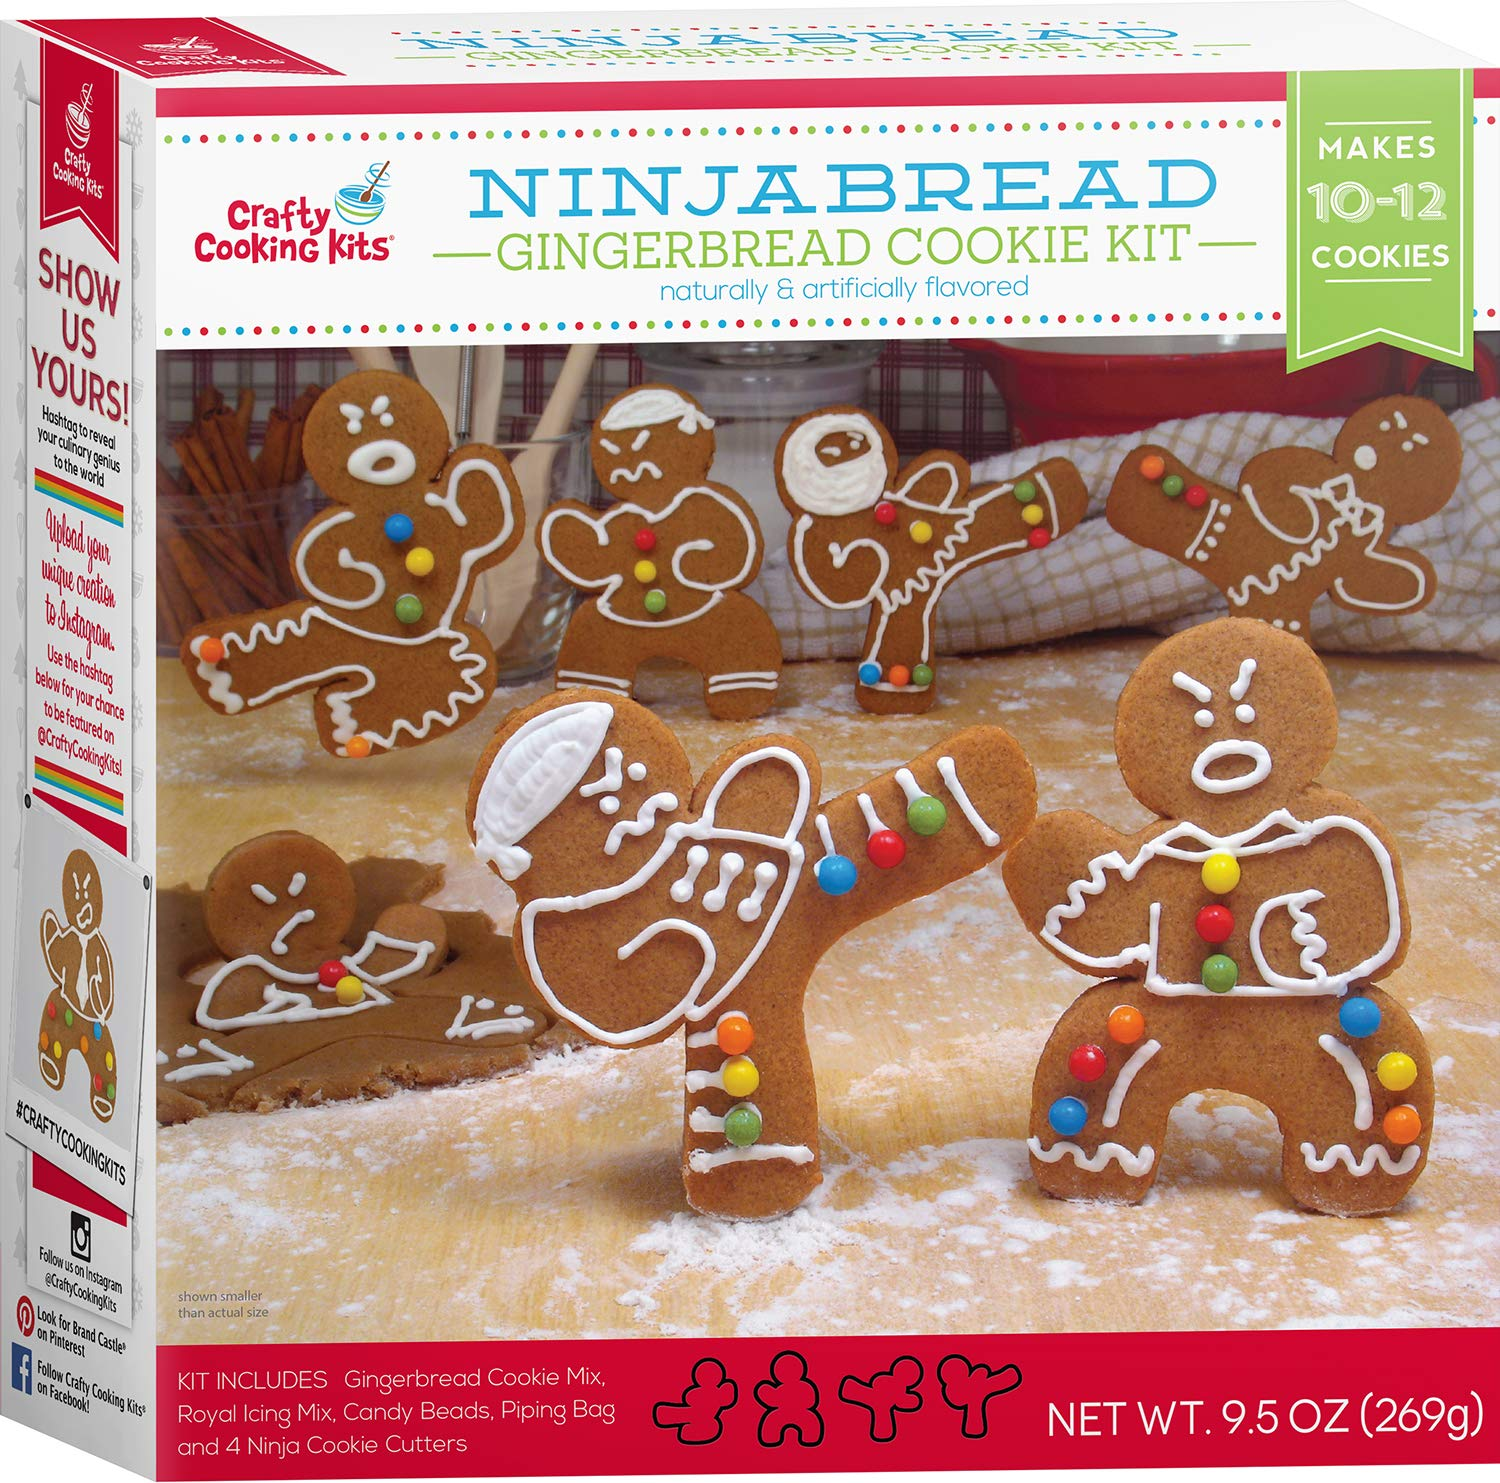 Ninjabread Gingerbread Cookie Kit - 9.5oz Baking Kit w/ Cookie Mix, Royal Icing Mix, Candy Beads, & Ninja Cookie Cutters - Crafty Cooking Kits - Yields 10-12 Ninjas